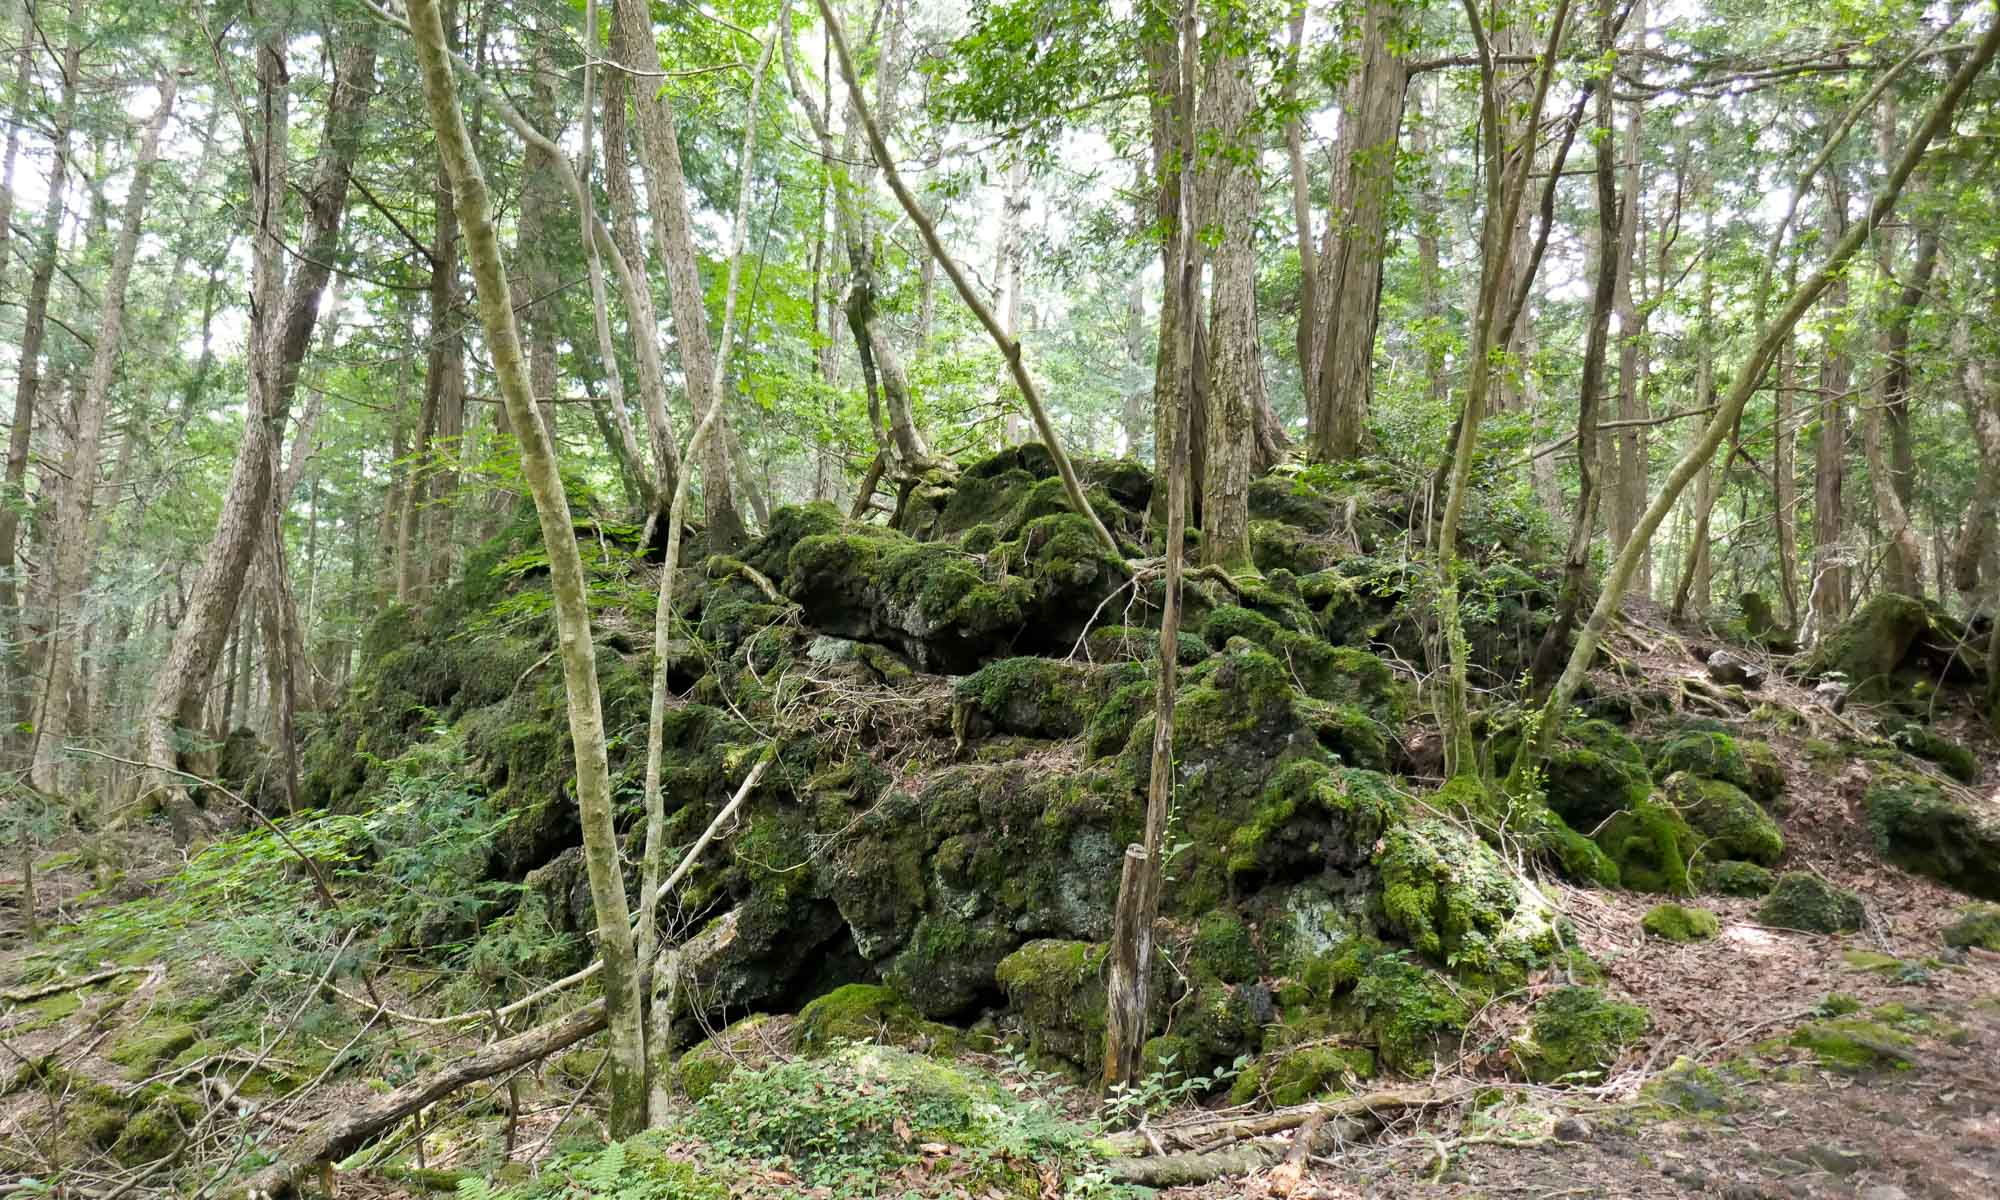 The forest lies on 35 square km of uneven (Fuji) lava ground, covered with moss